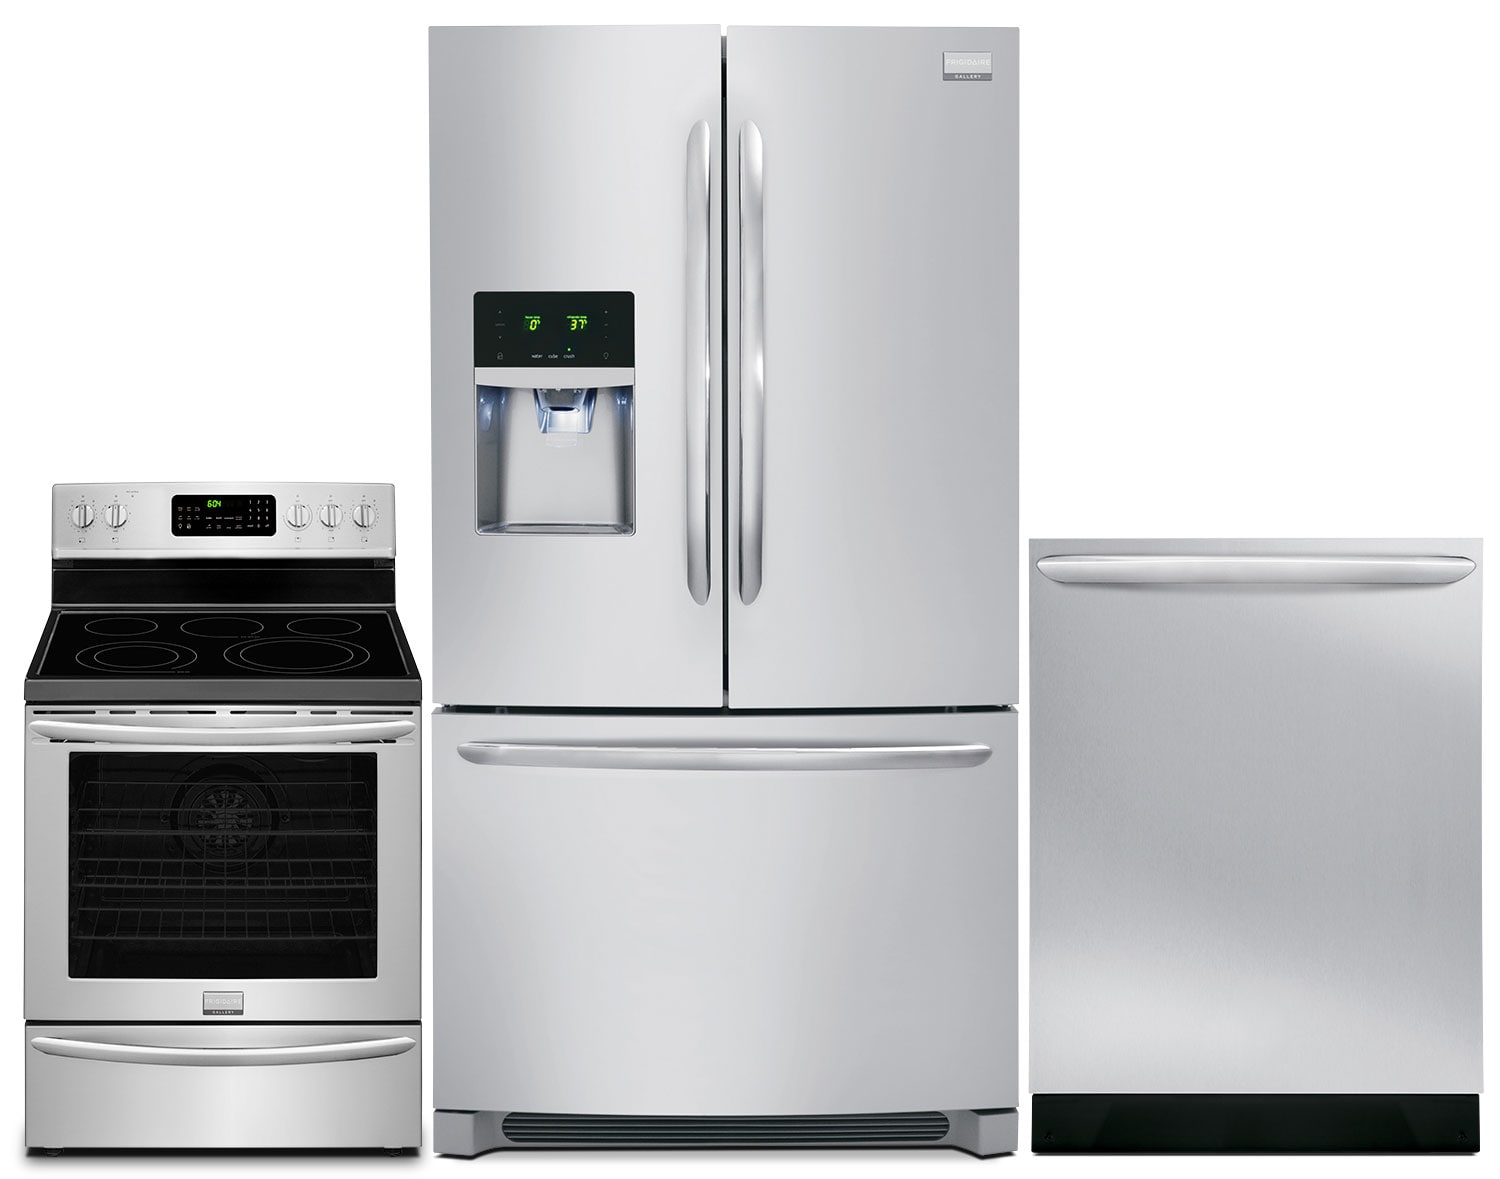 Frigidaire Gallery 28. Cu. Ft. Refrigerator, 5.8 Cu. Ft. Range and Dishwasher – Stainless Steel